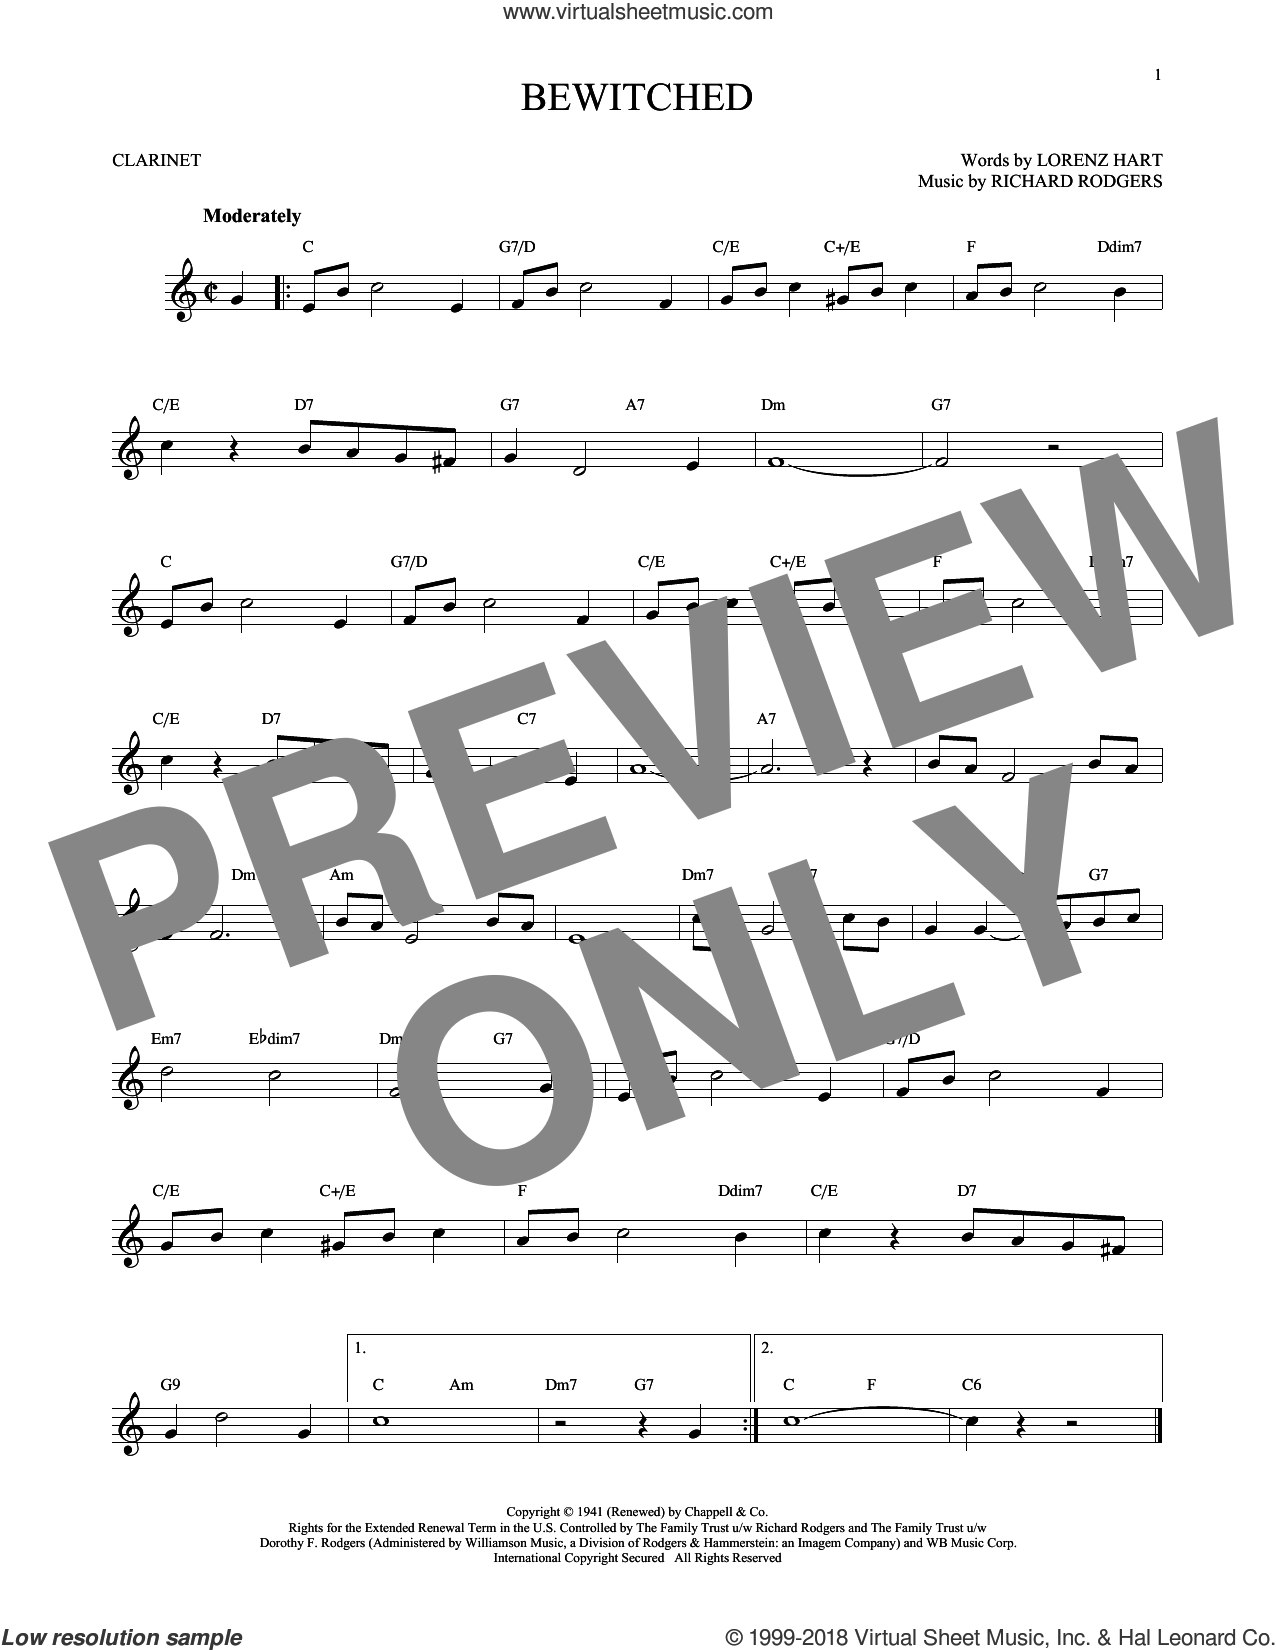 Bewitched sheet music for clarinet solo by Rodgers & Hart, Betty Smith Group, Lorenz Hart and Richard Rodgers, intermediate skill level